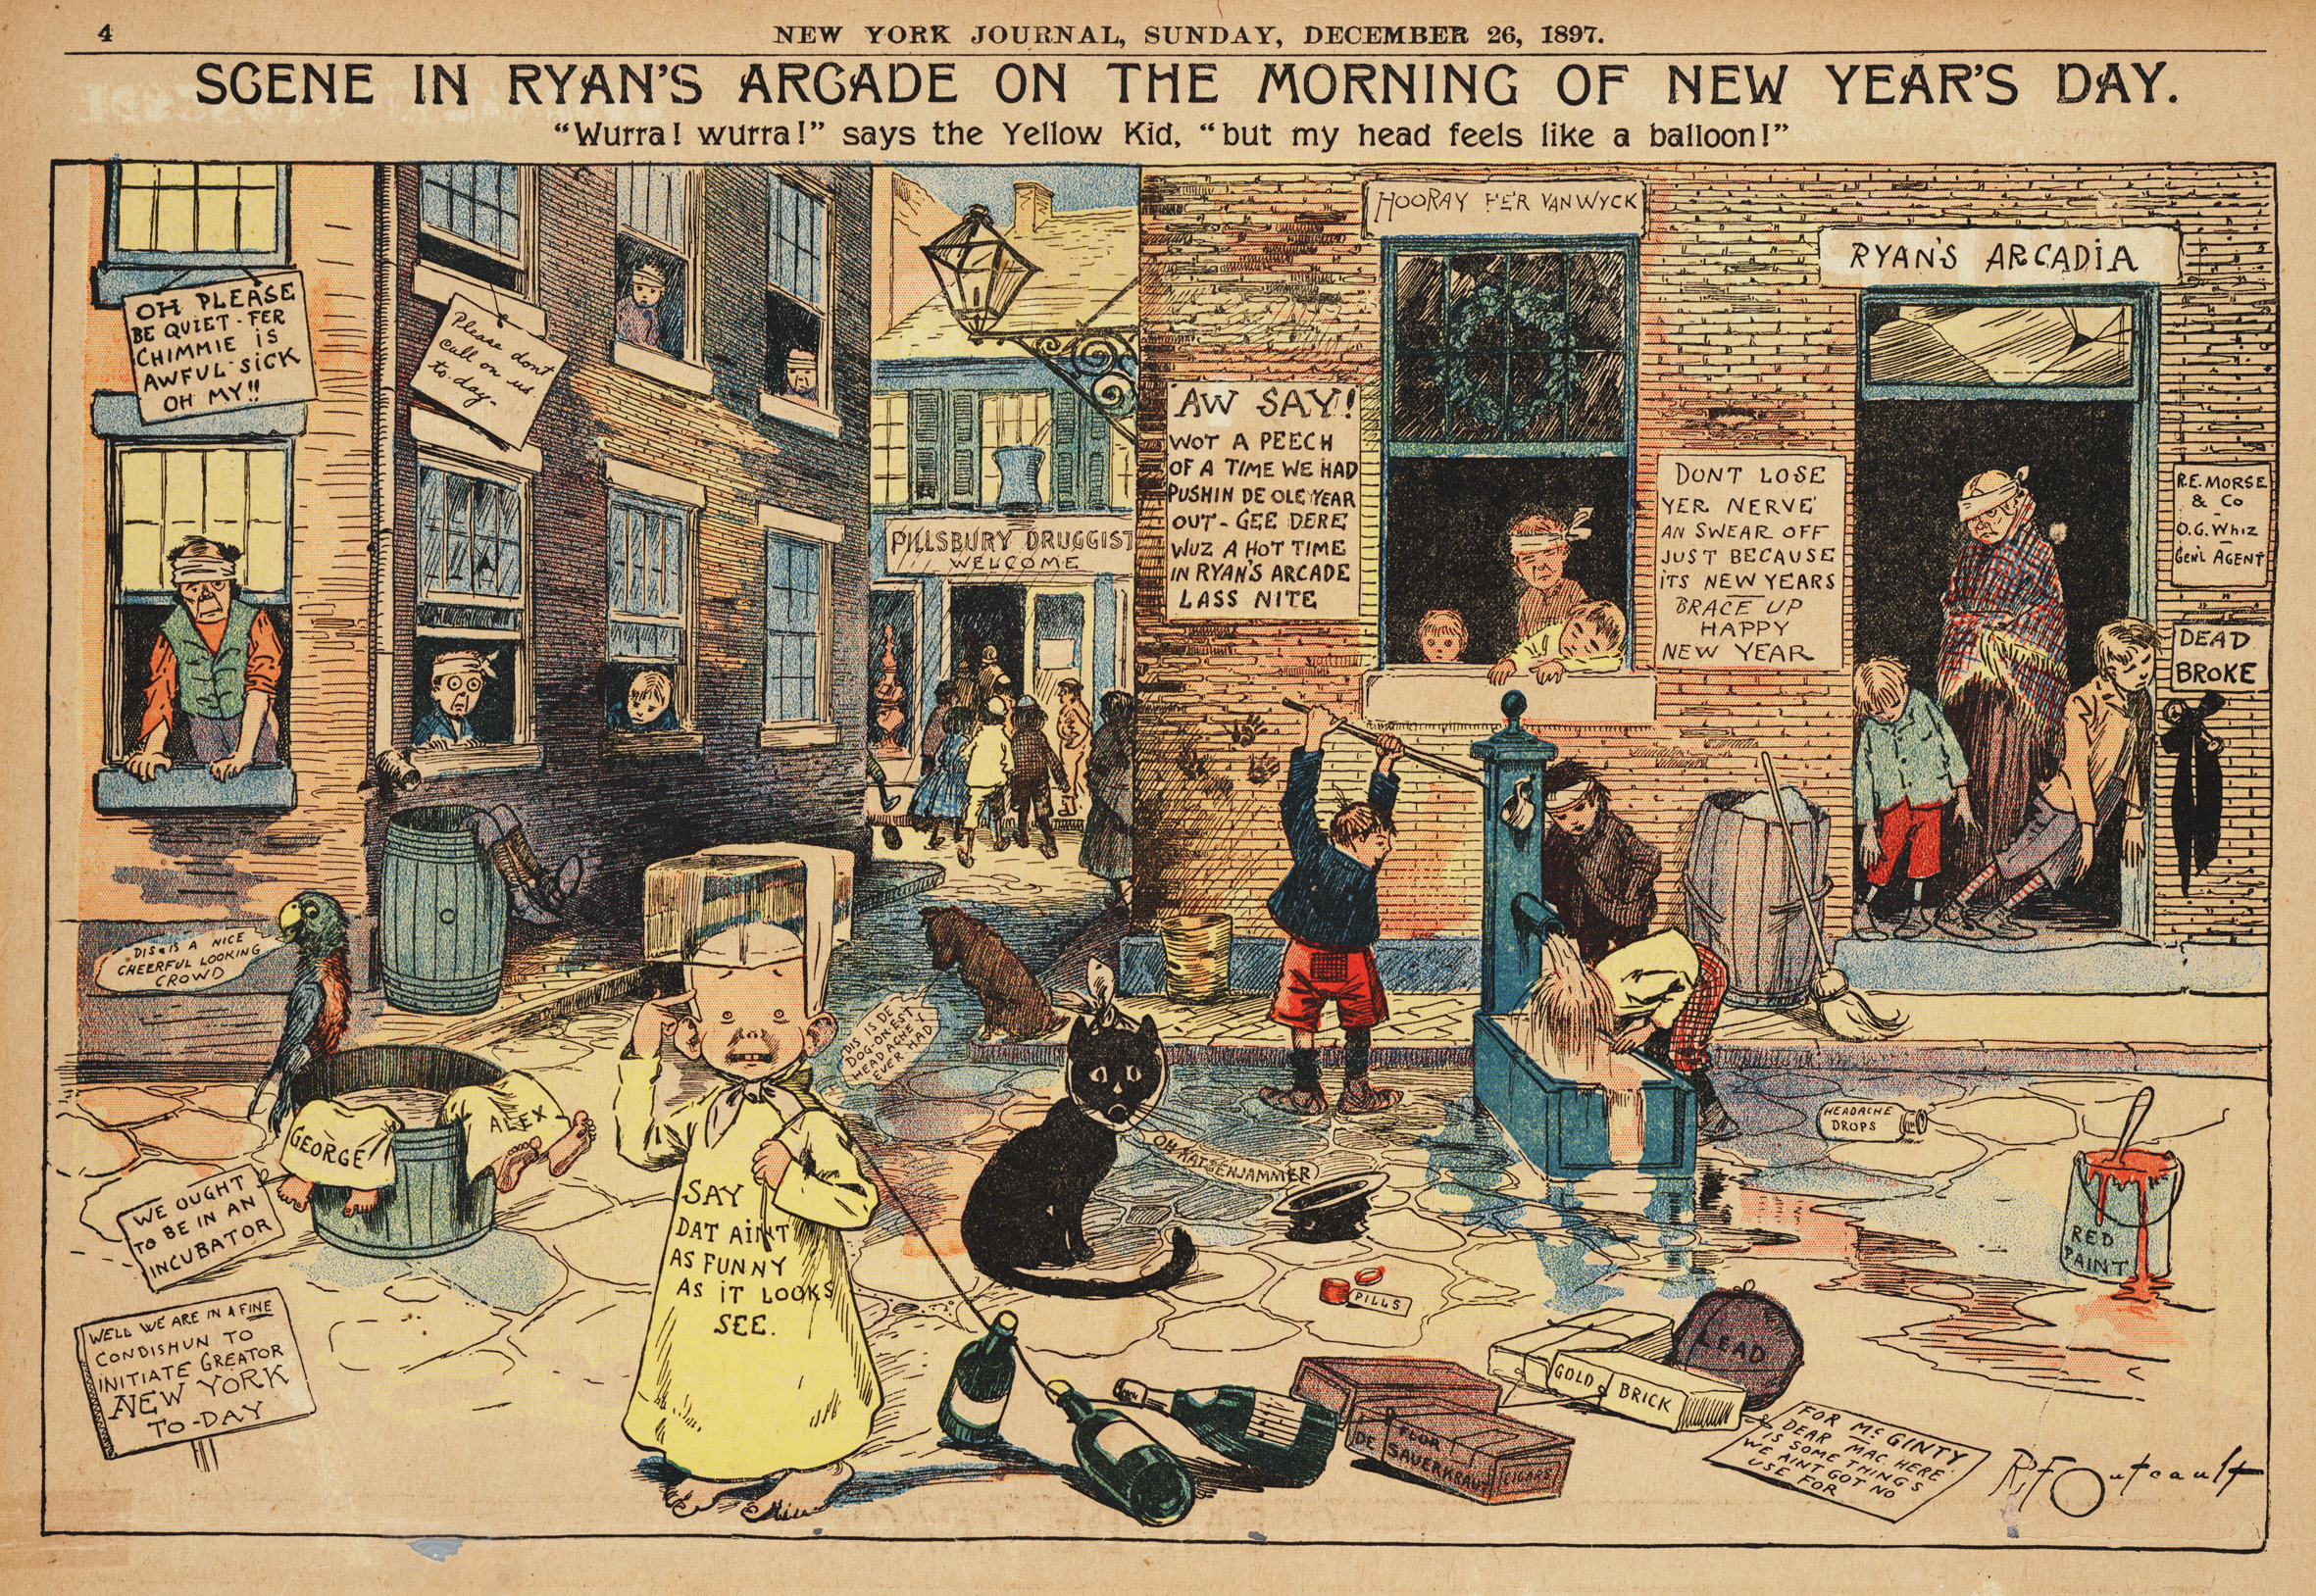 December 26, 1897. Scene in Ryan's Arcade on the Morning of New Year's Day